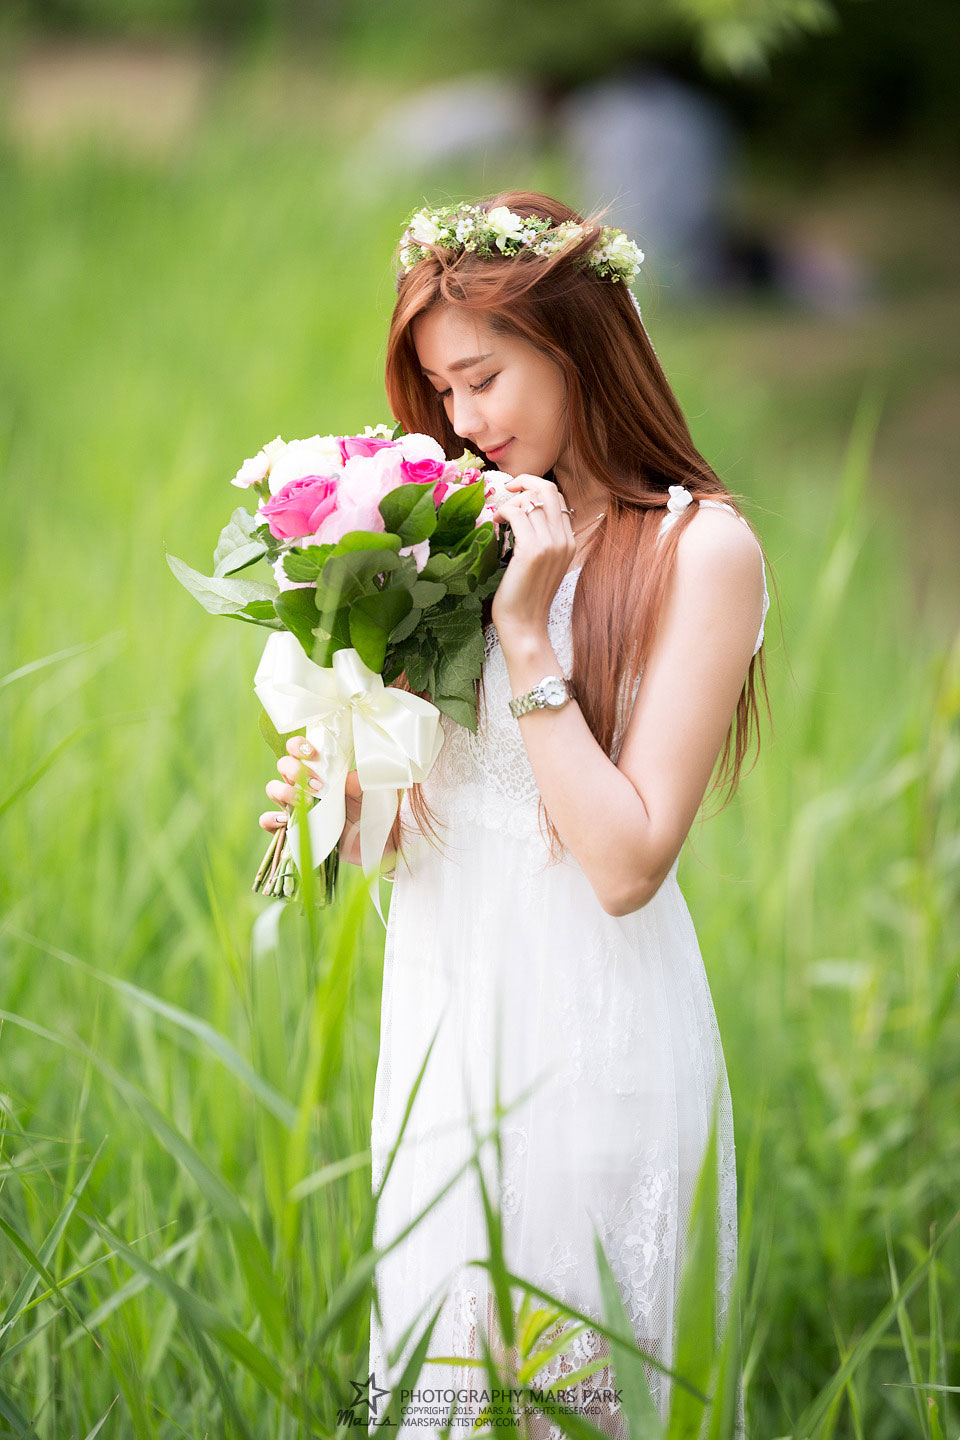 Korean model Kim Ha Yul wedding dress